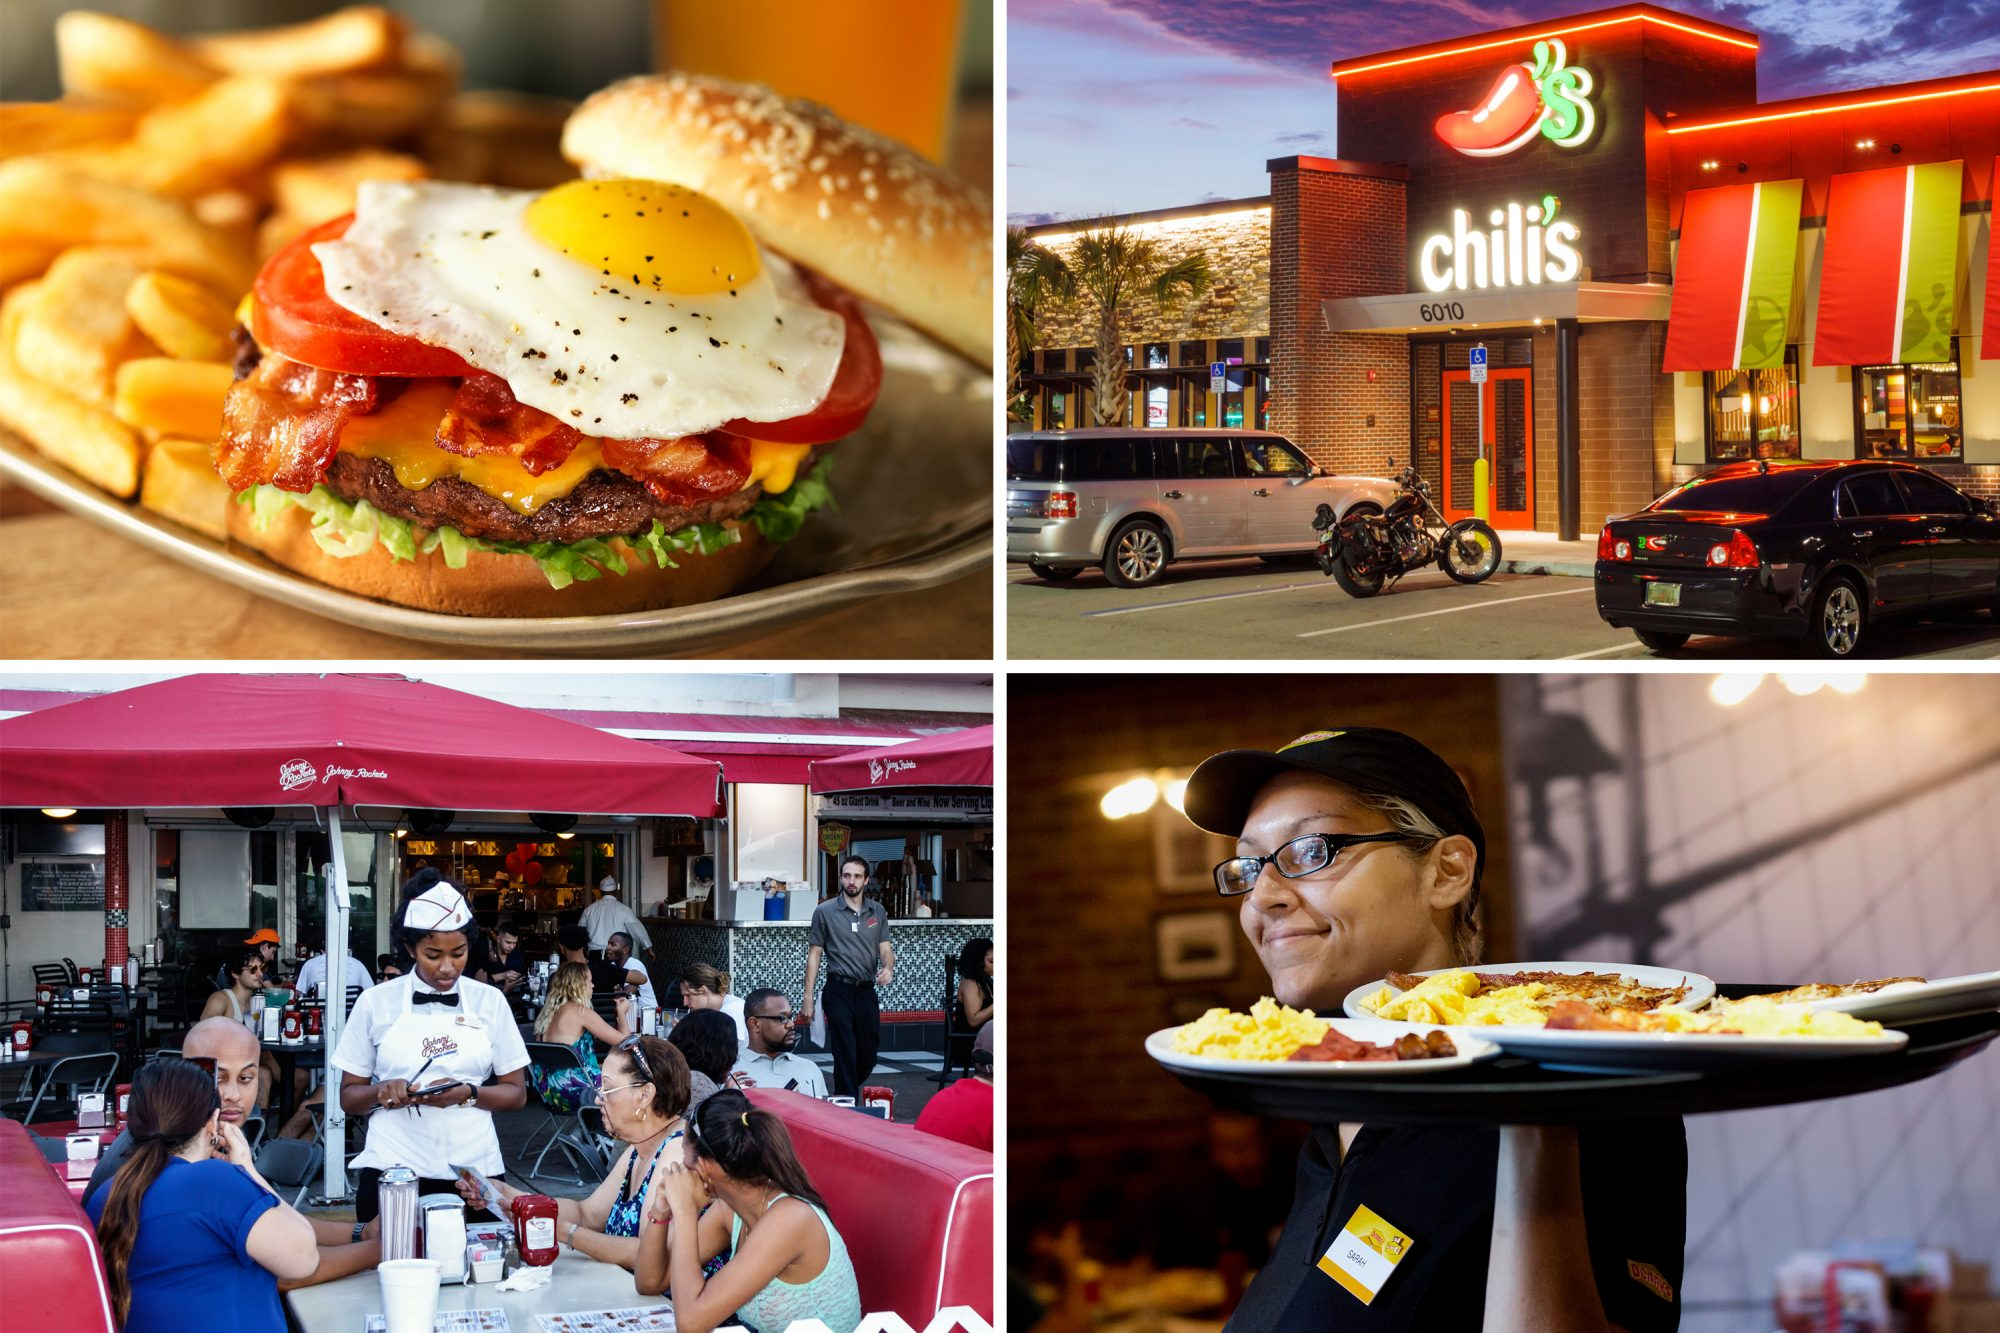 This Is the Best Restaurant Chain in America